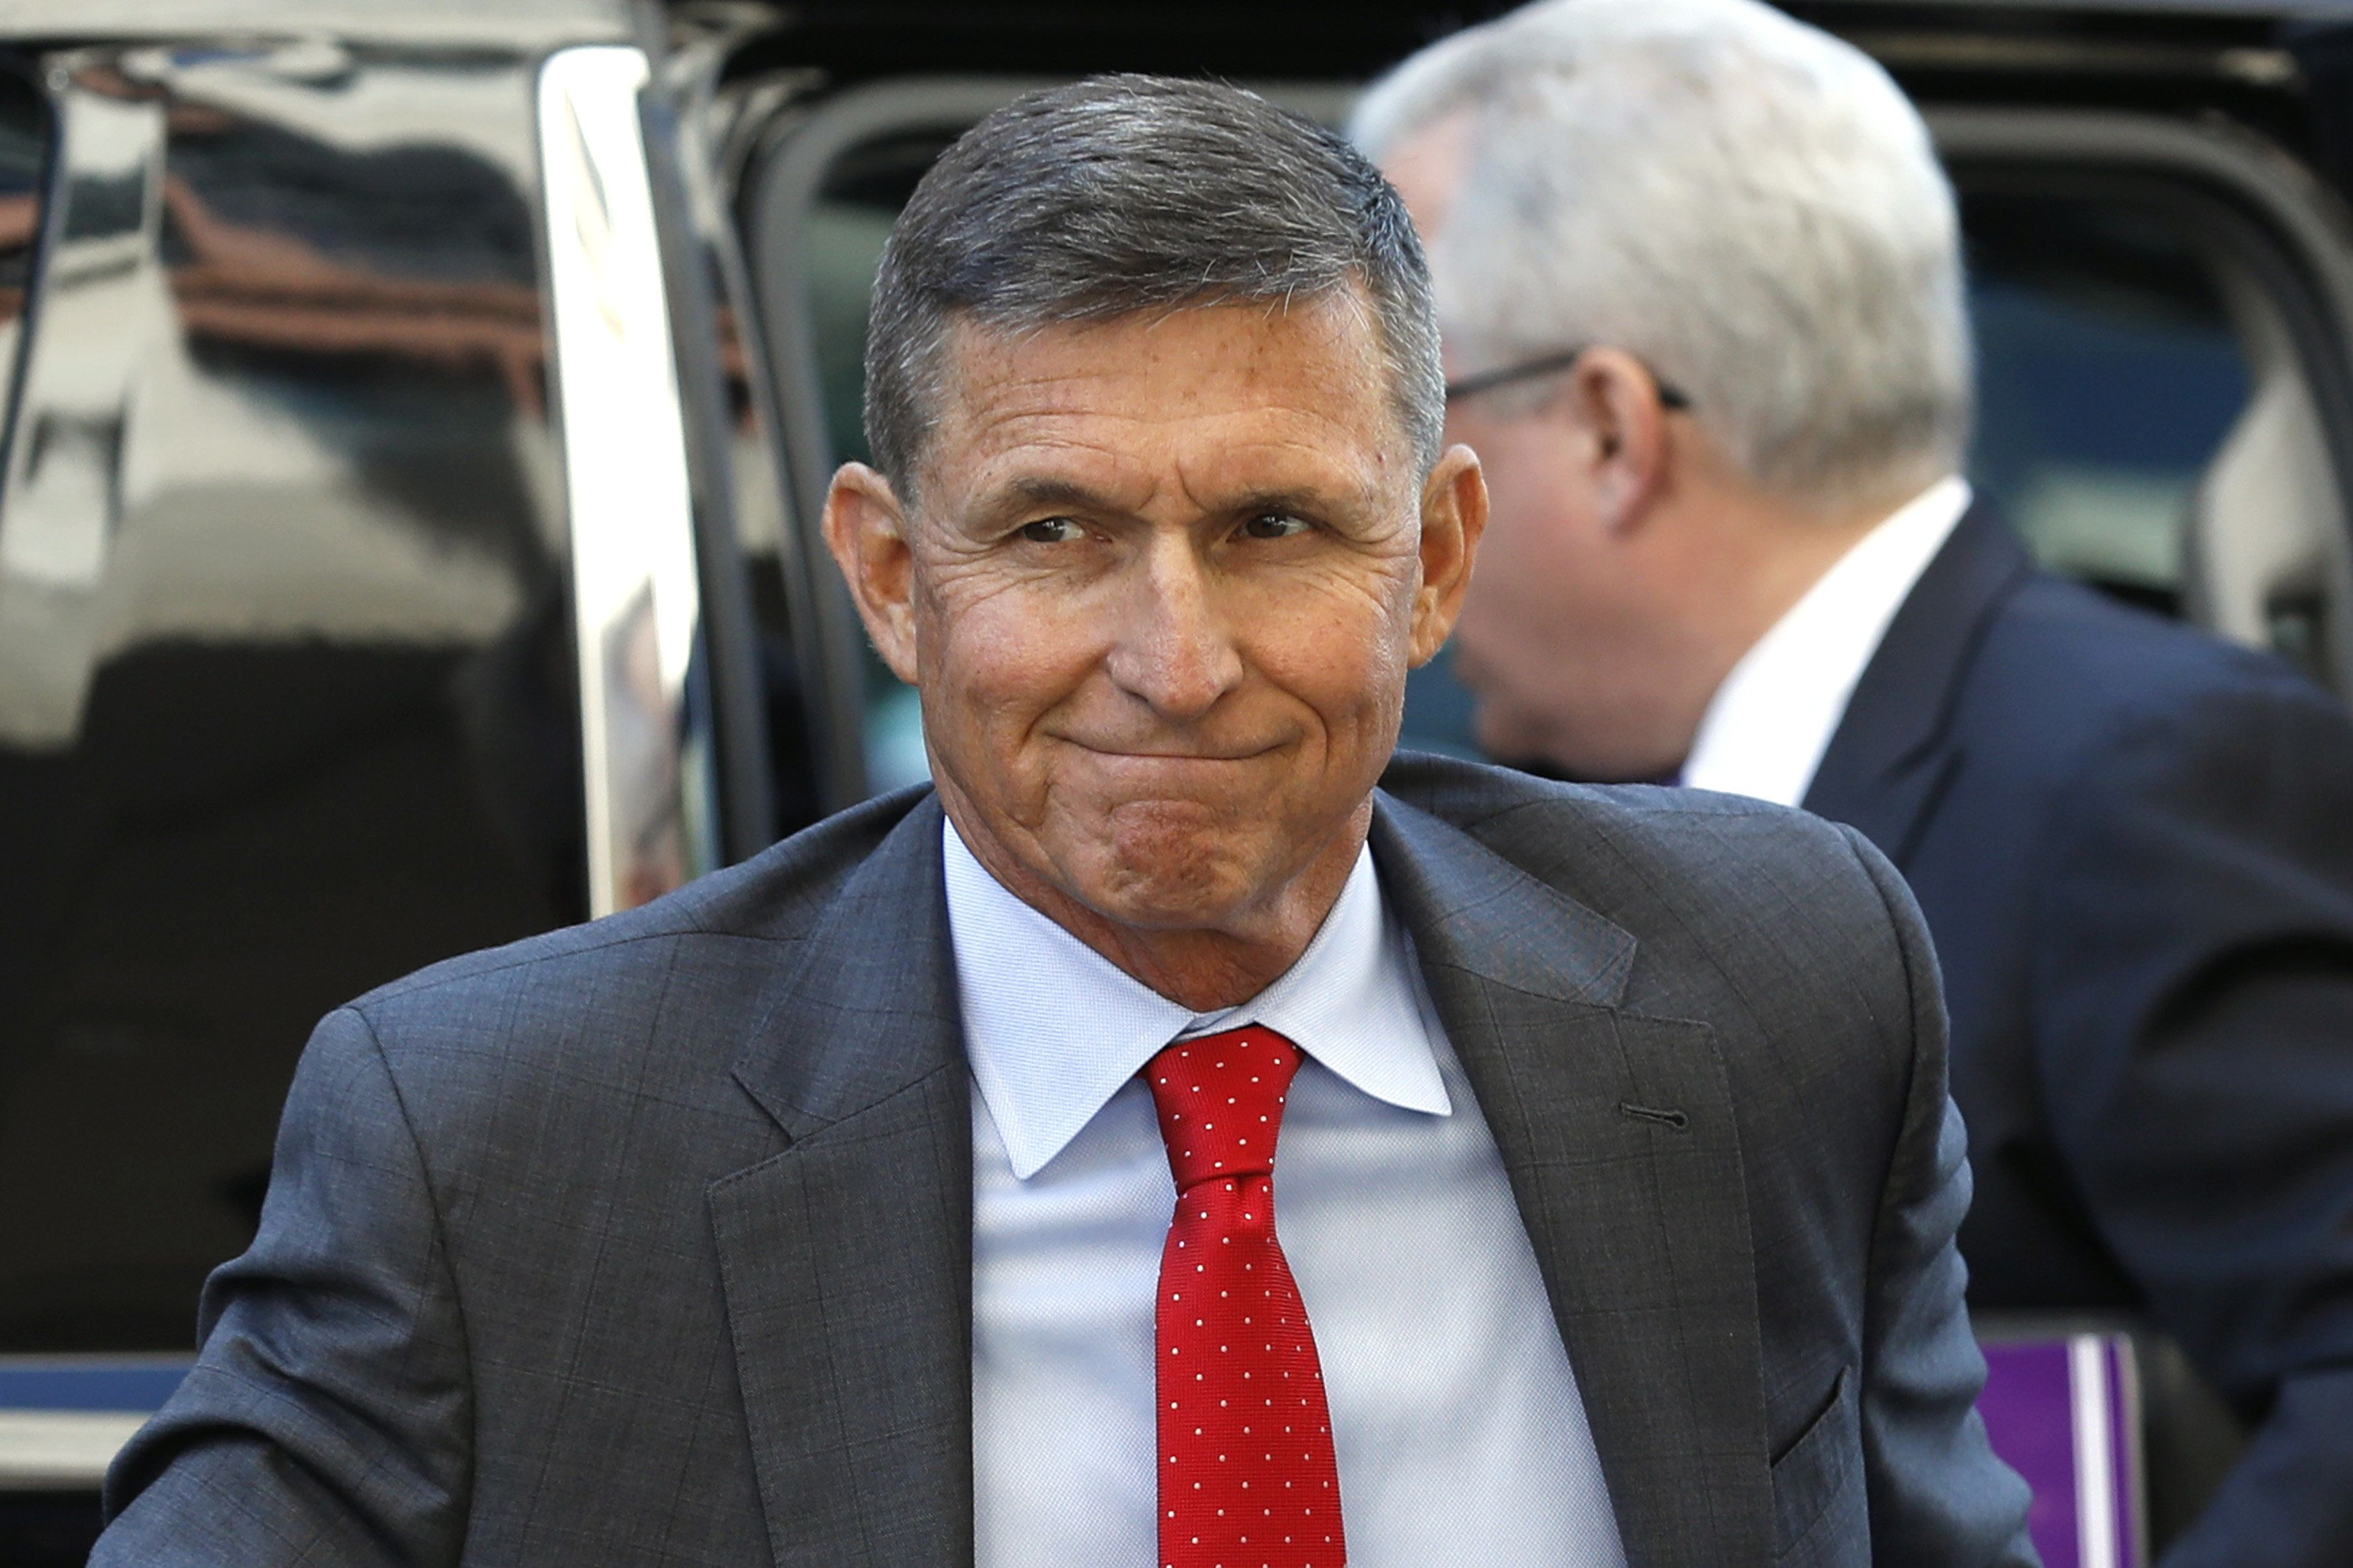 Michael Flynn, former U.S. national security advisor, arrives for a status hearing at federal court in Washington, D.C., U.S., on Tuesday, July 10, 2018. Flynn made his first federal court appearance since pleading guilty last year to lying to federal agents, appearing briefly before a judge who asked to be updated on the status of the case by Aug. 24. Photographer: Yuri Gripas/Bloomberg via Getty Images